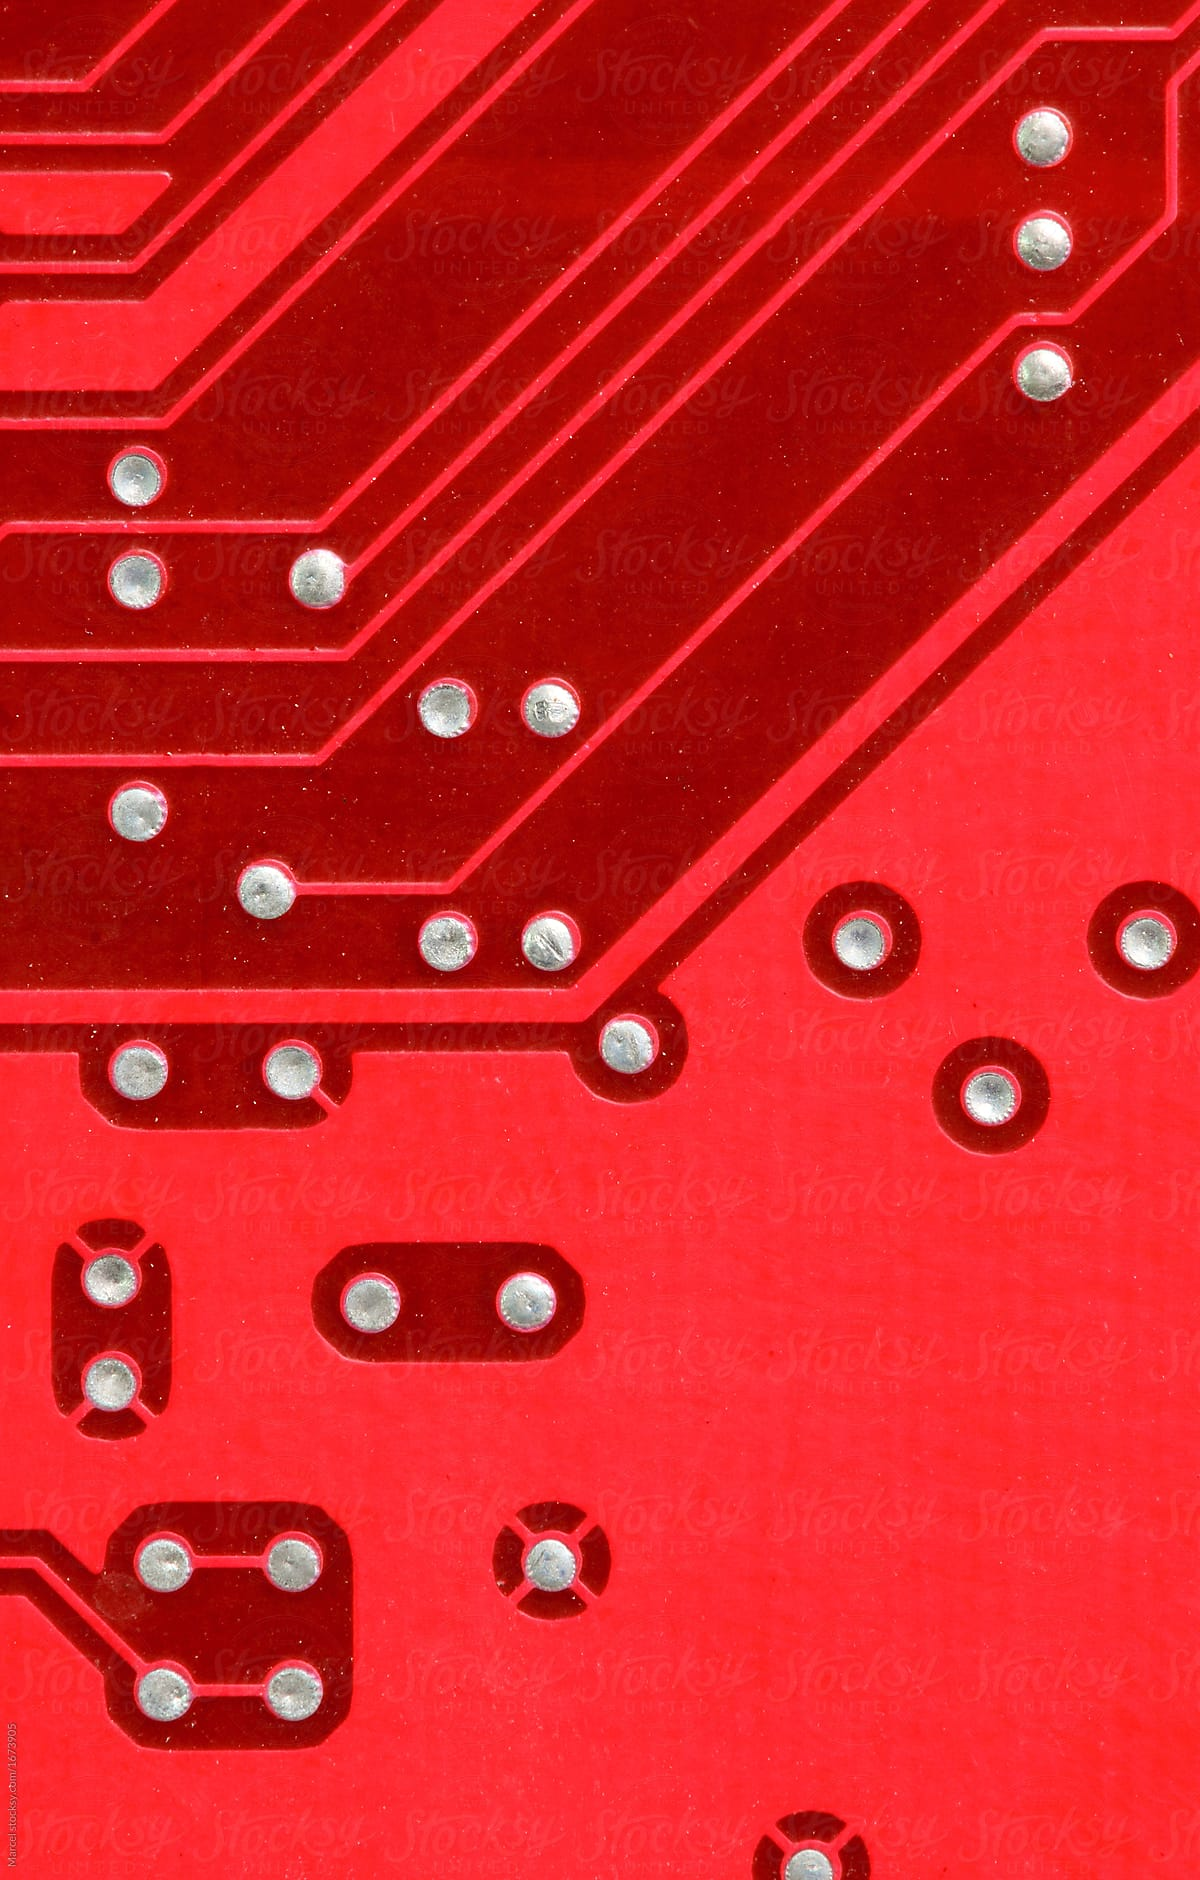 Macro Of A Printed Circuit Board Computer Stocksy United Paper By Marcel For